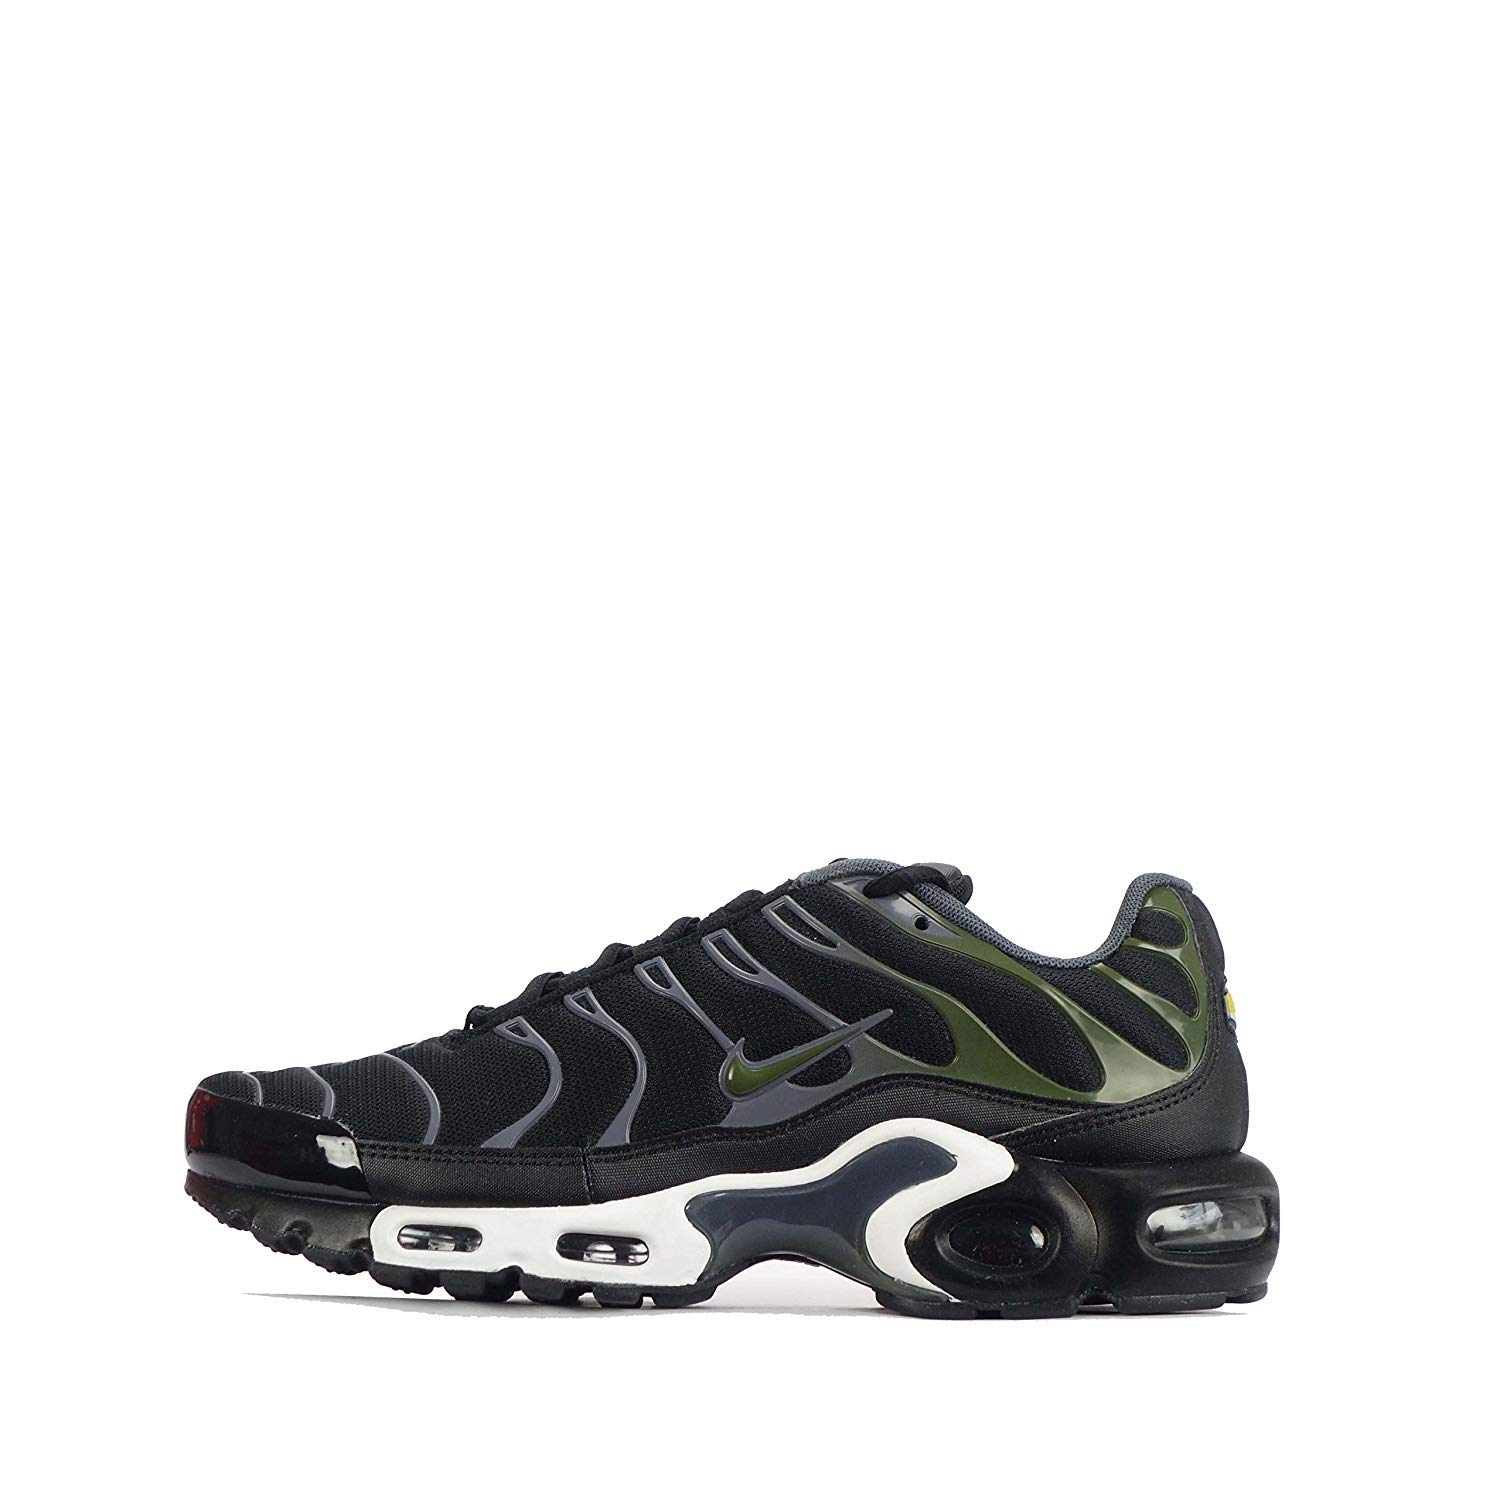 finest selection 508dc f47c9 Amazon.com  Nike Mens Air Max Plus Sneakers New, BlackOlive Green  852630-007  Fashion Sneakers